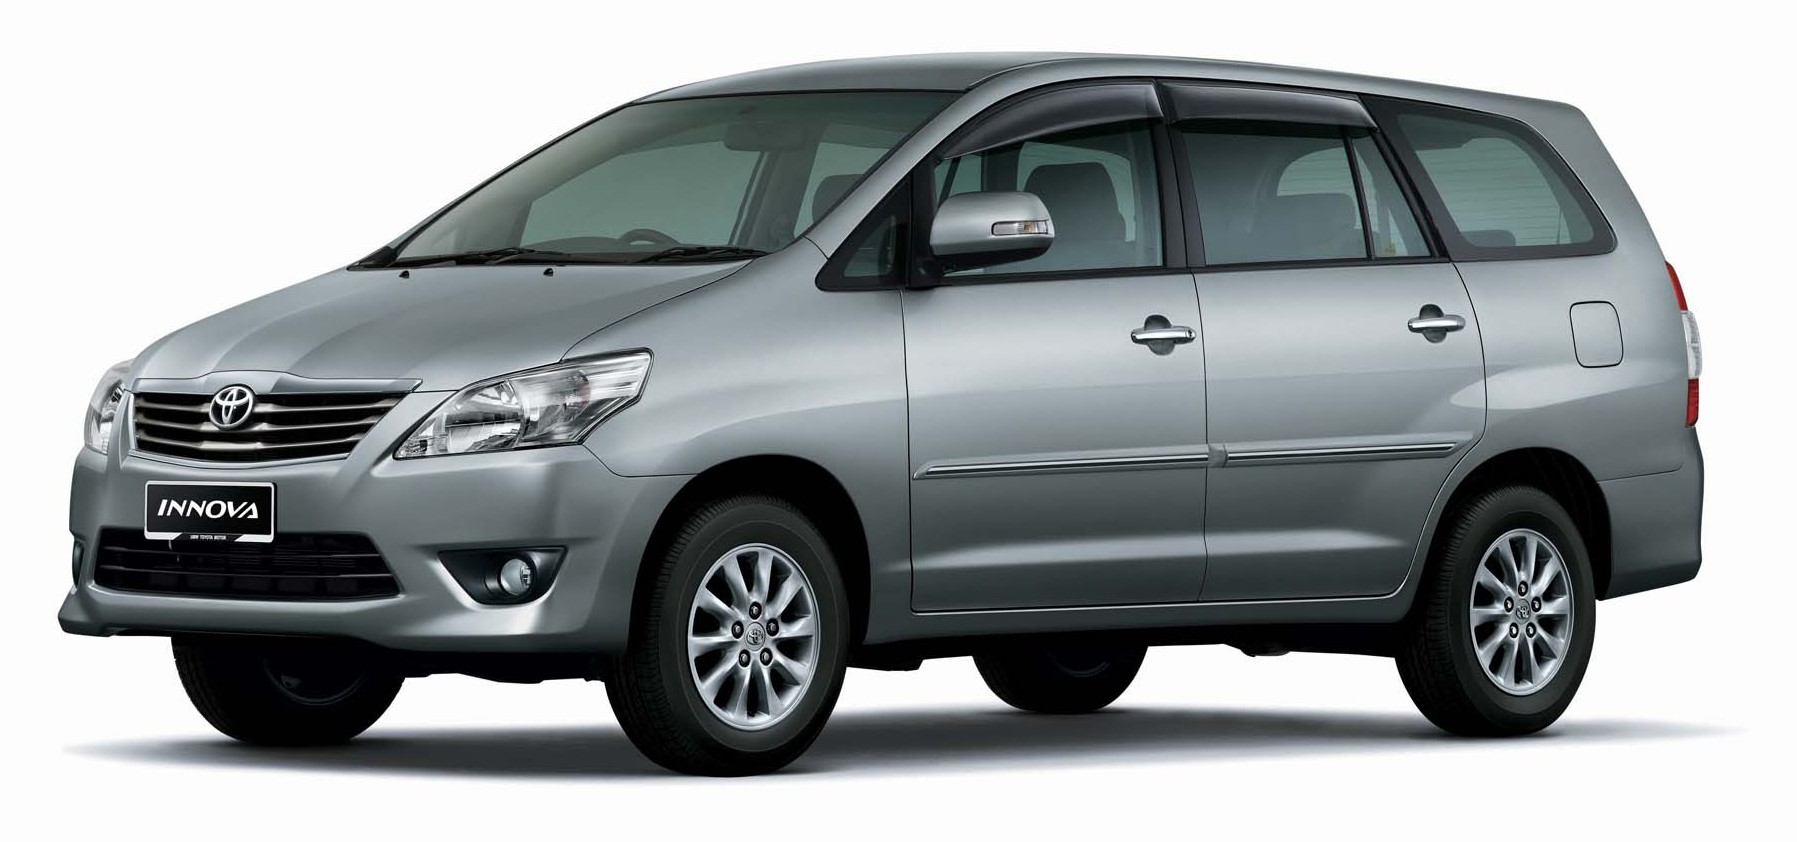 2011 Toyota Innova Gets Updated Looks In Malaysia